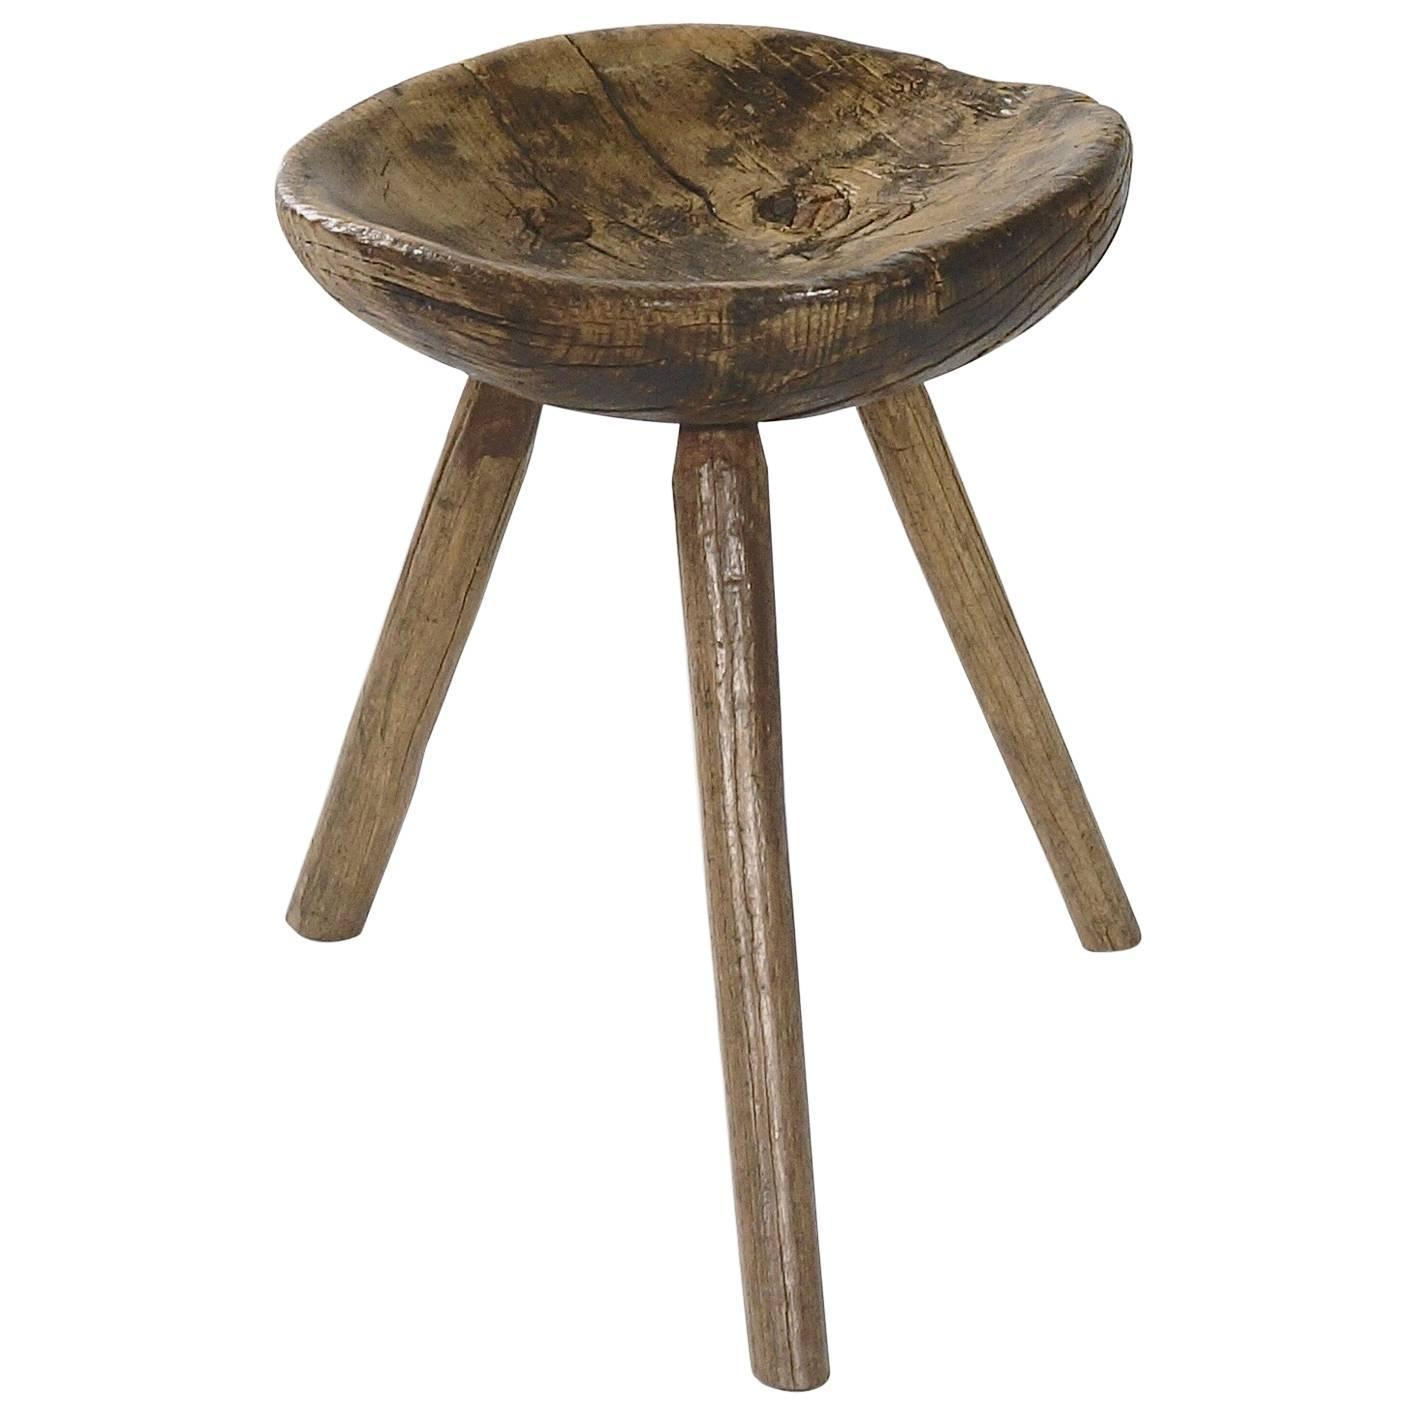 A Rustic Elmwood Milking Stool For Sale At 1stdibs